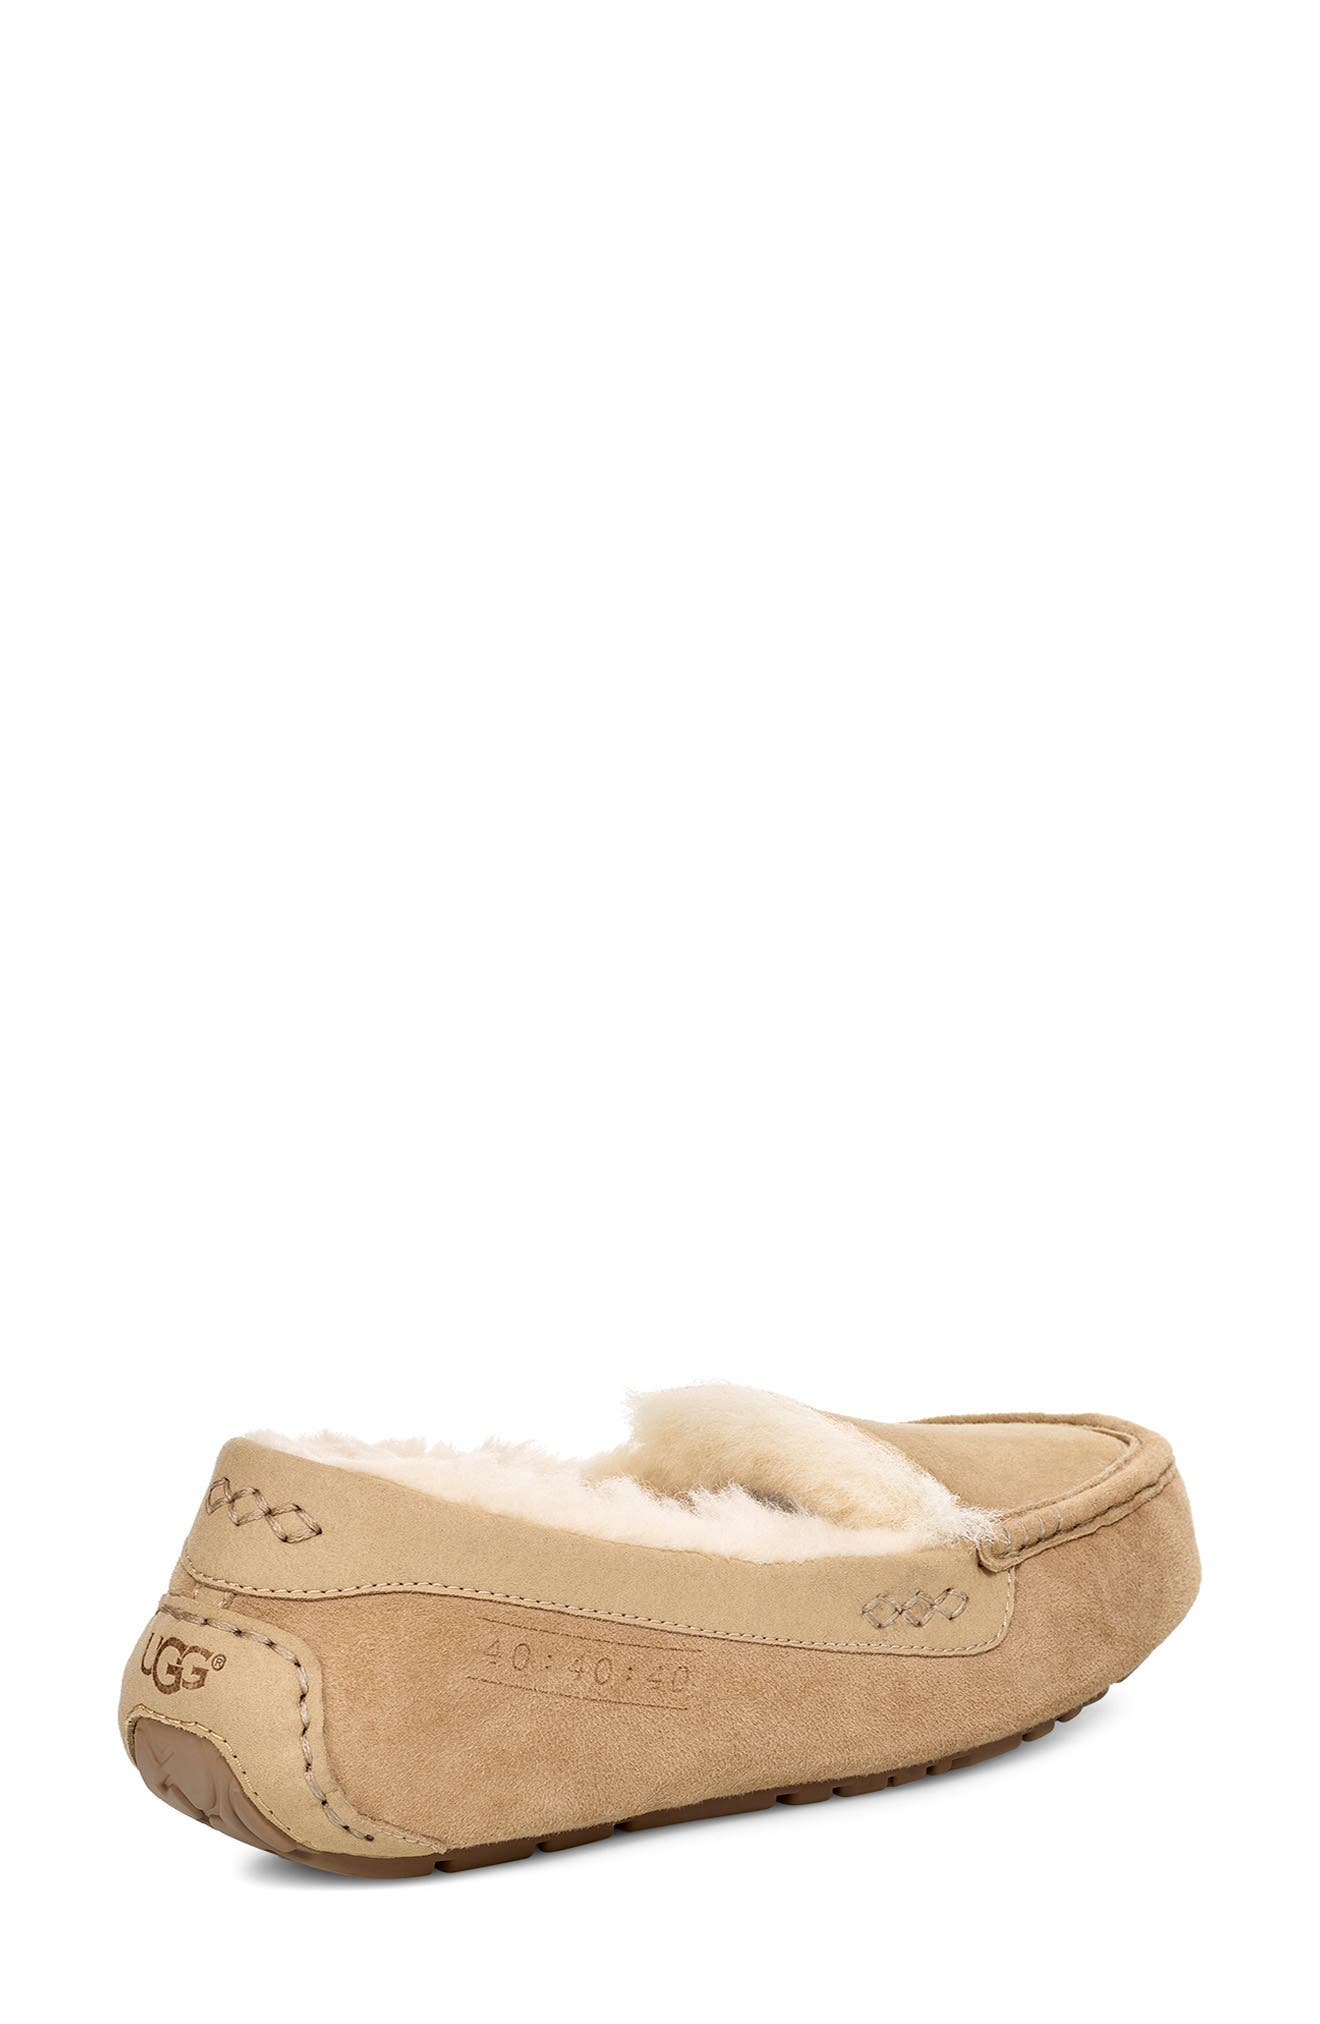 UGG<SUP>®</SUP>, Ansley 40:40:40 Anniversary Slipper, Alternate thumbnail 2, color, SAND